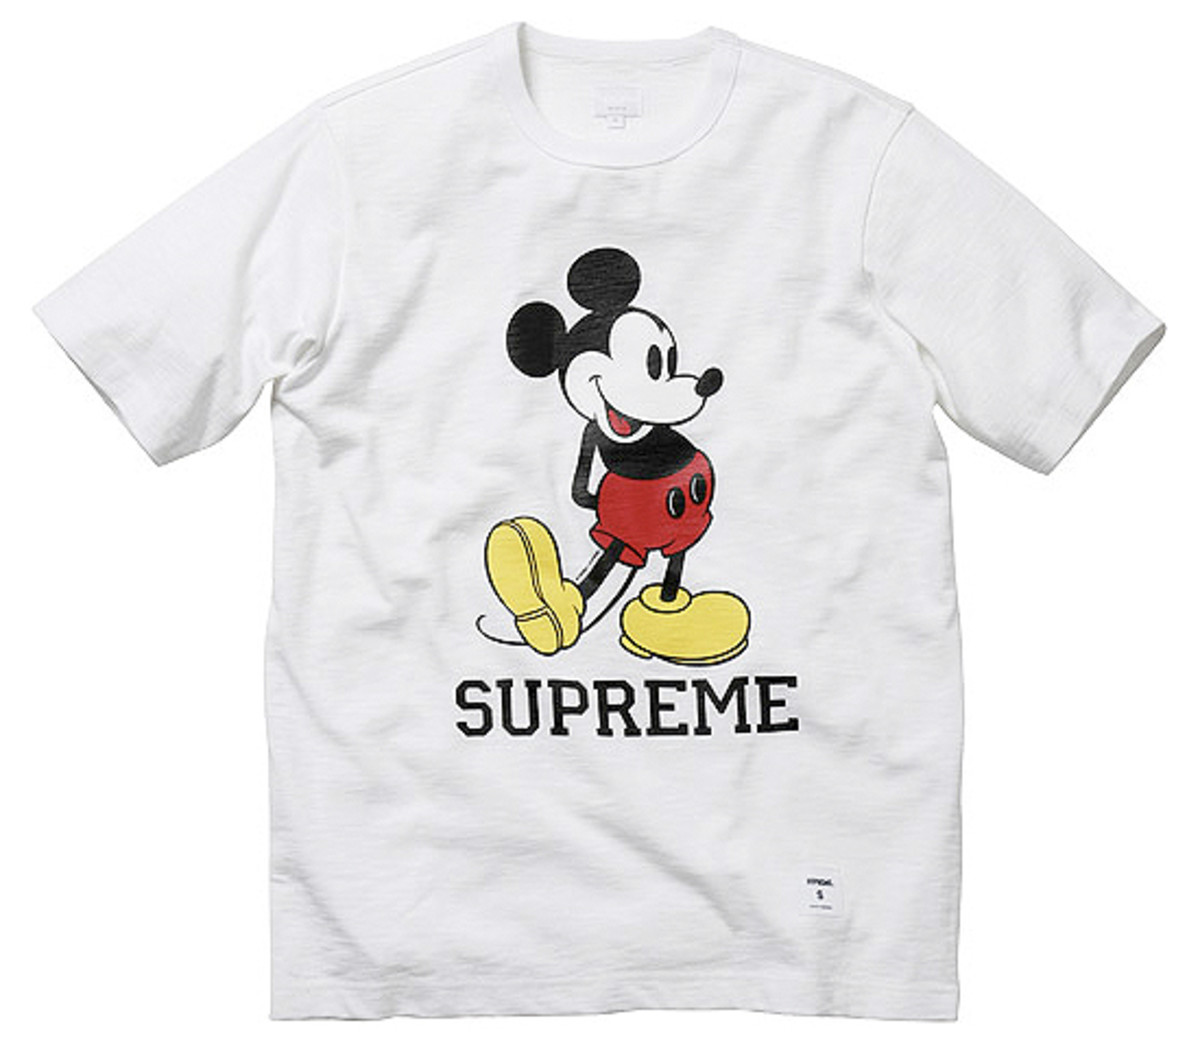 supreme-disney-mickey-mouse-t-shirt-00